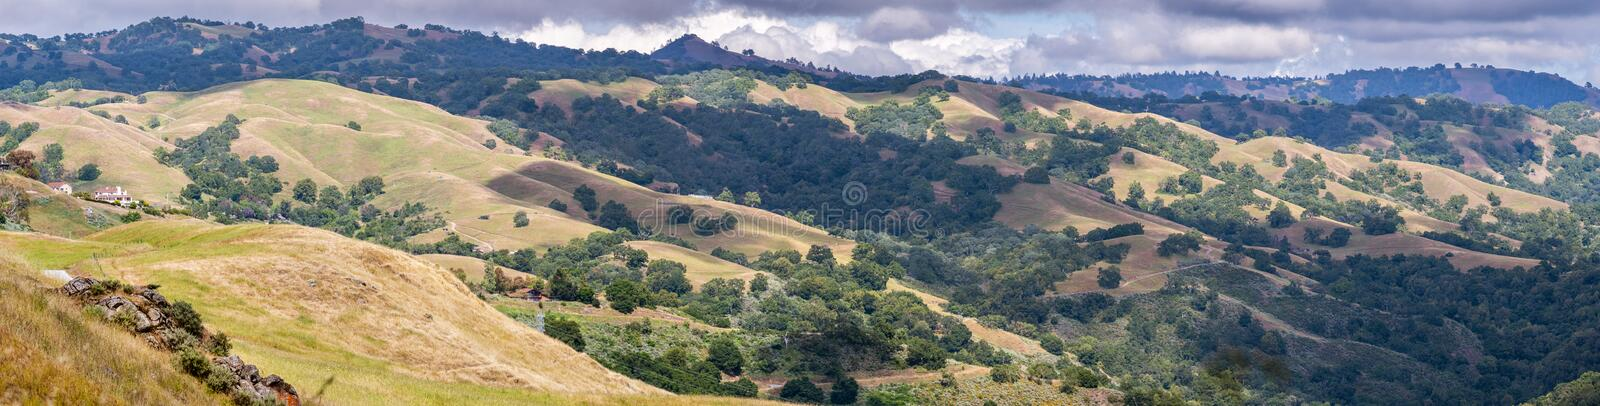 Rolling hills in the South San Francisco bay area, San Jose, California royalty free stock photography